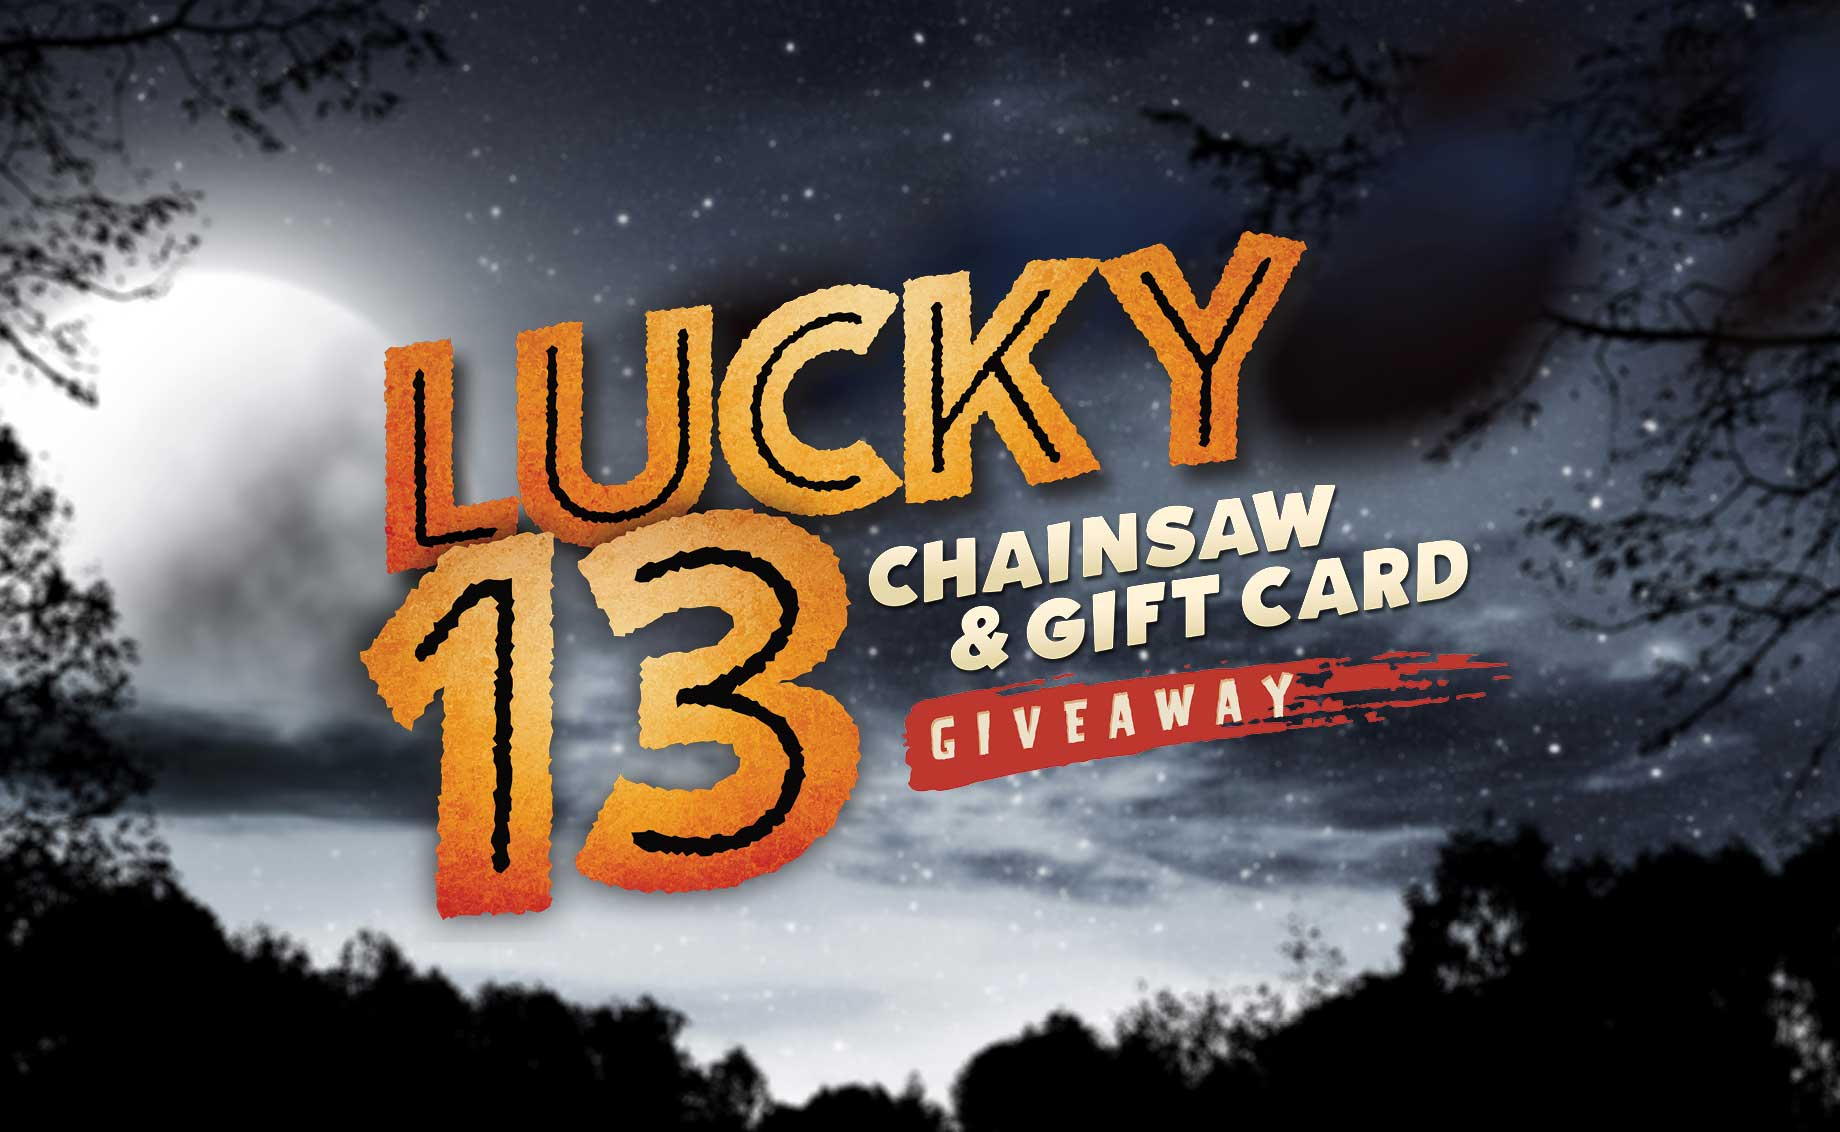 Lucky 13 Chainsaw & Gift Card Giveaway